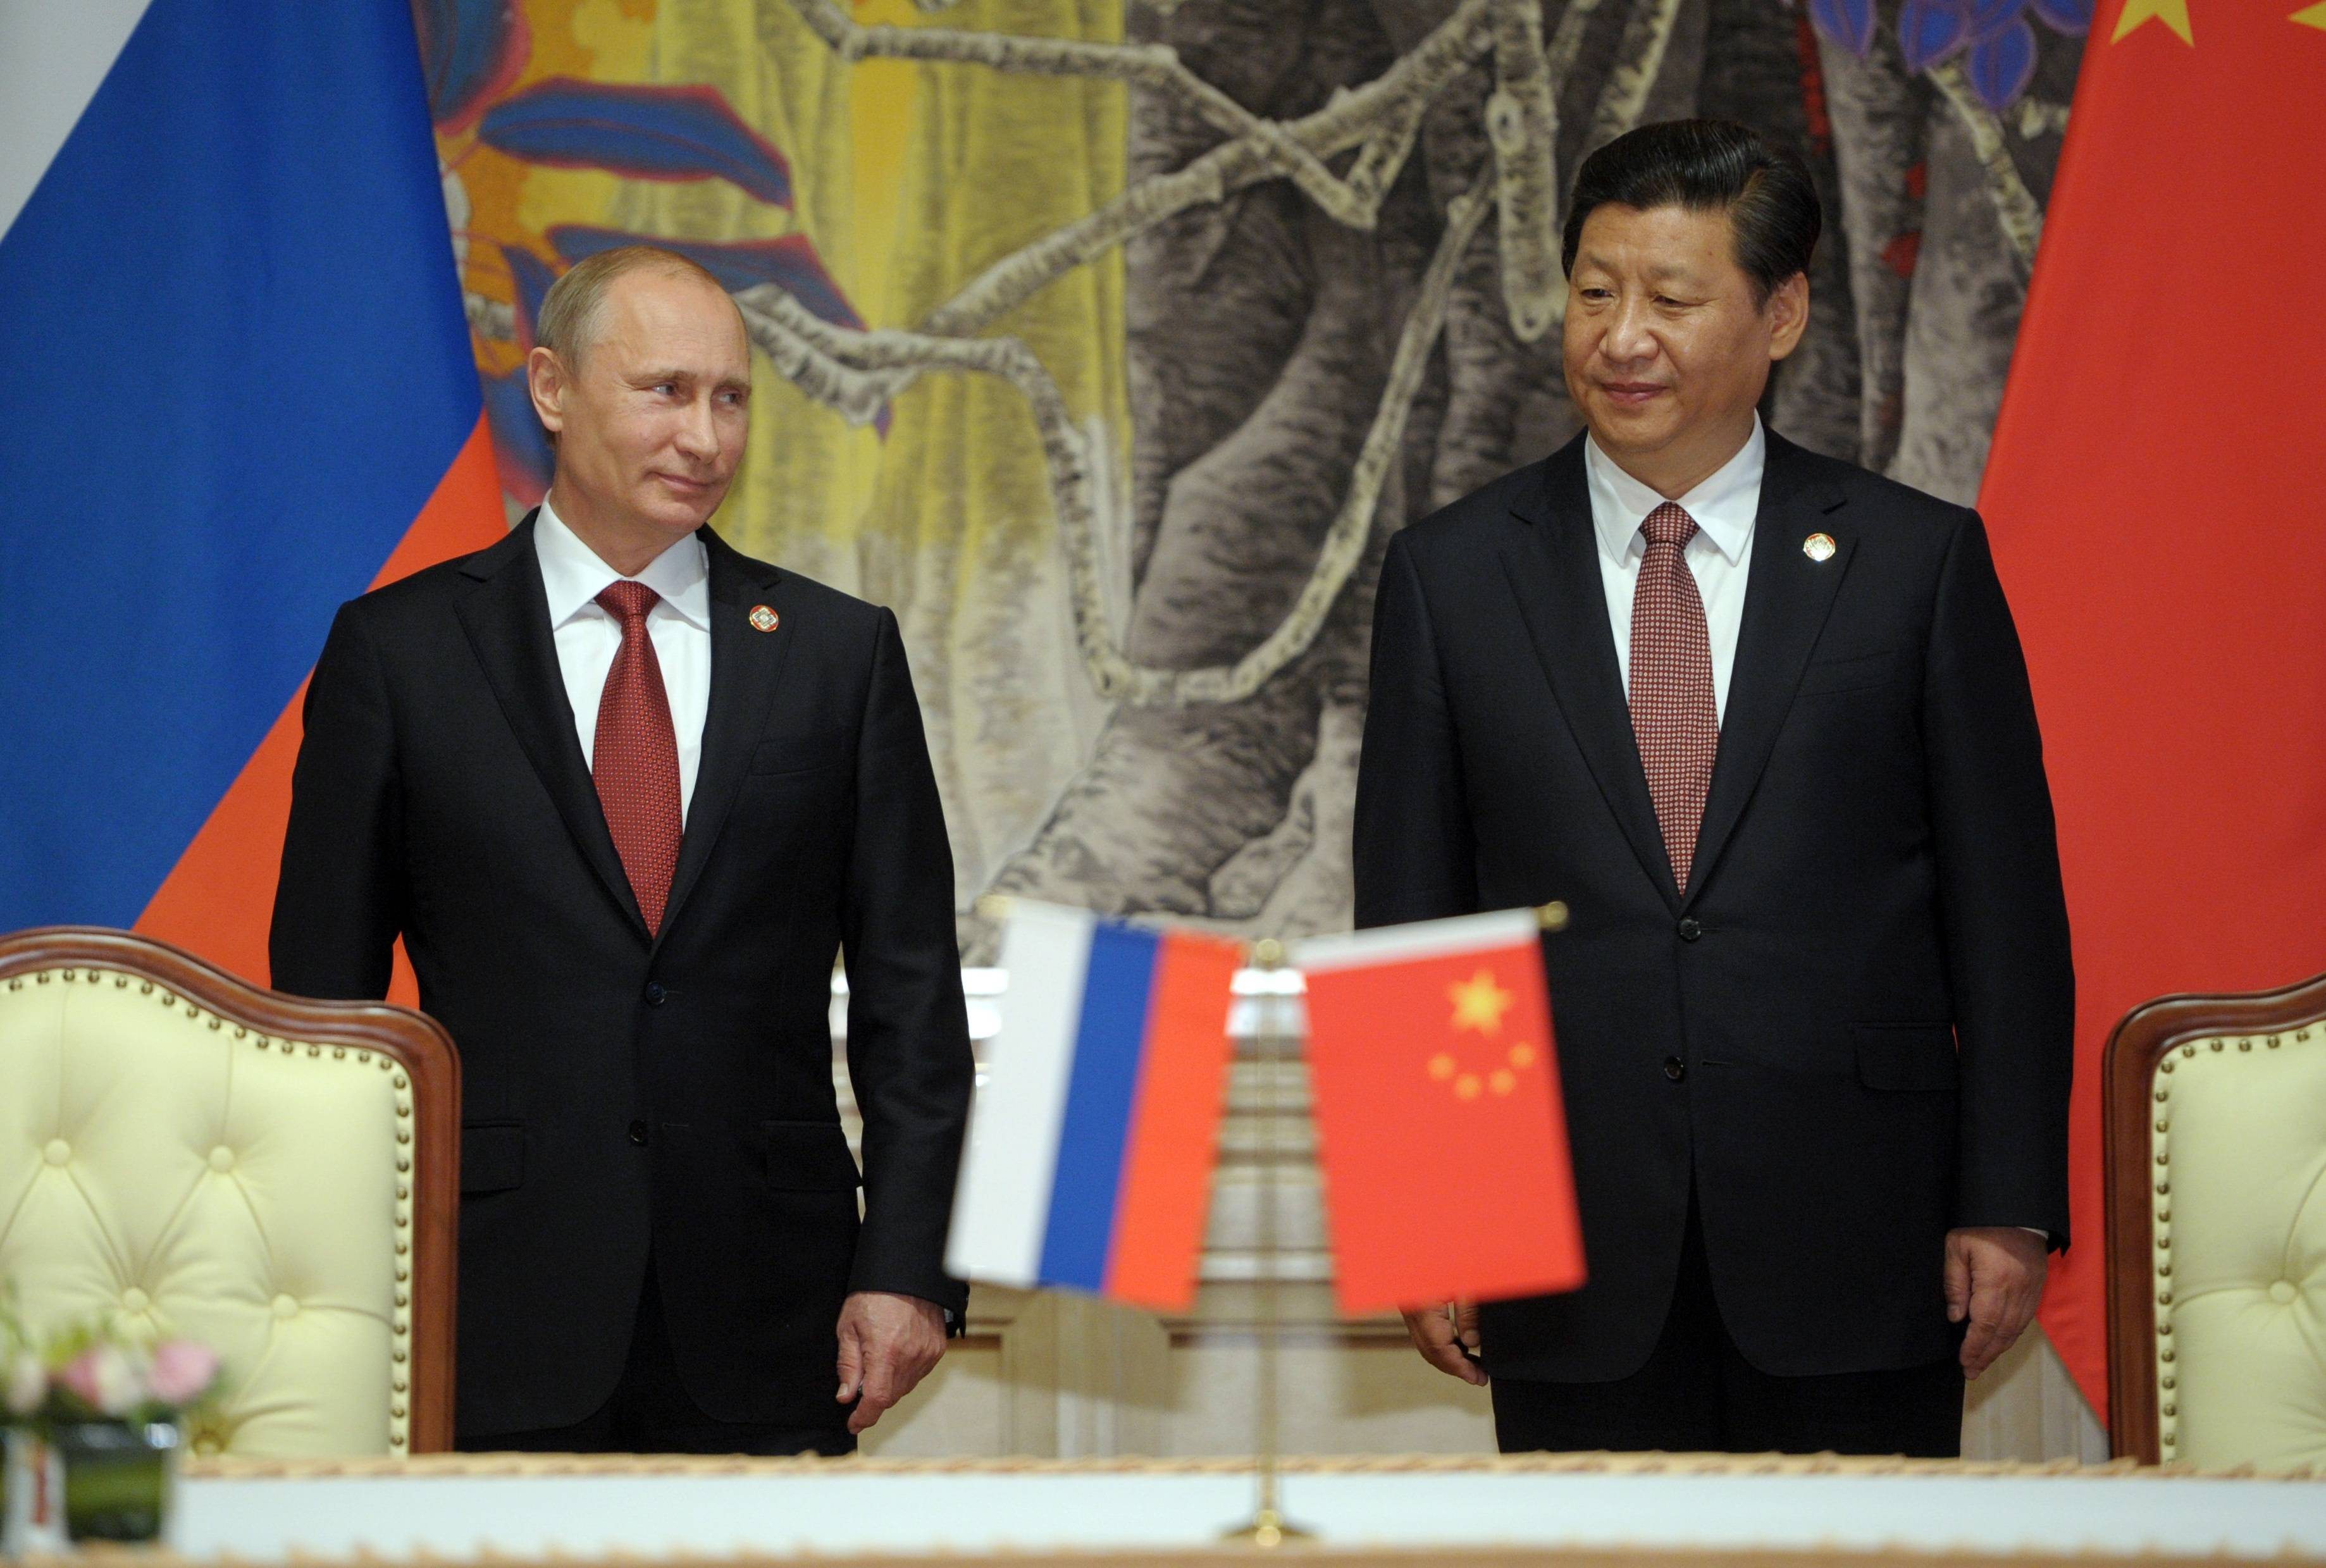 Russia's President Vladimir Putin, and China's President Xi Jinping, right, appear at a signing ceremony in Shanghai, China, Wednesday. China signed a long-awaited, 30-year deal Wednesday to buy Russian natural gas worth some $400 billion in a financial and diplomatic boost to diplomatically isolated President Vladimir Putin.